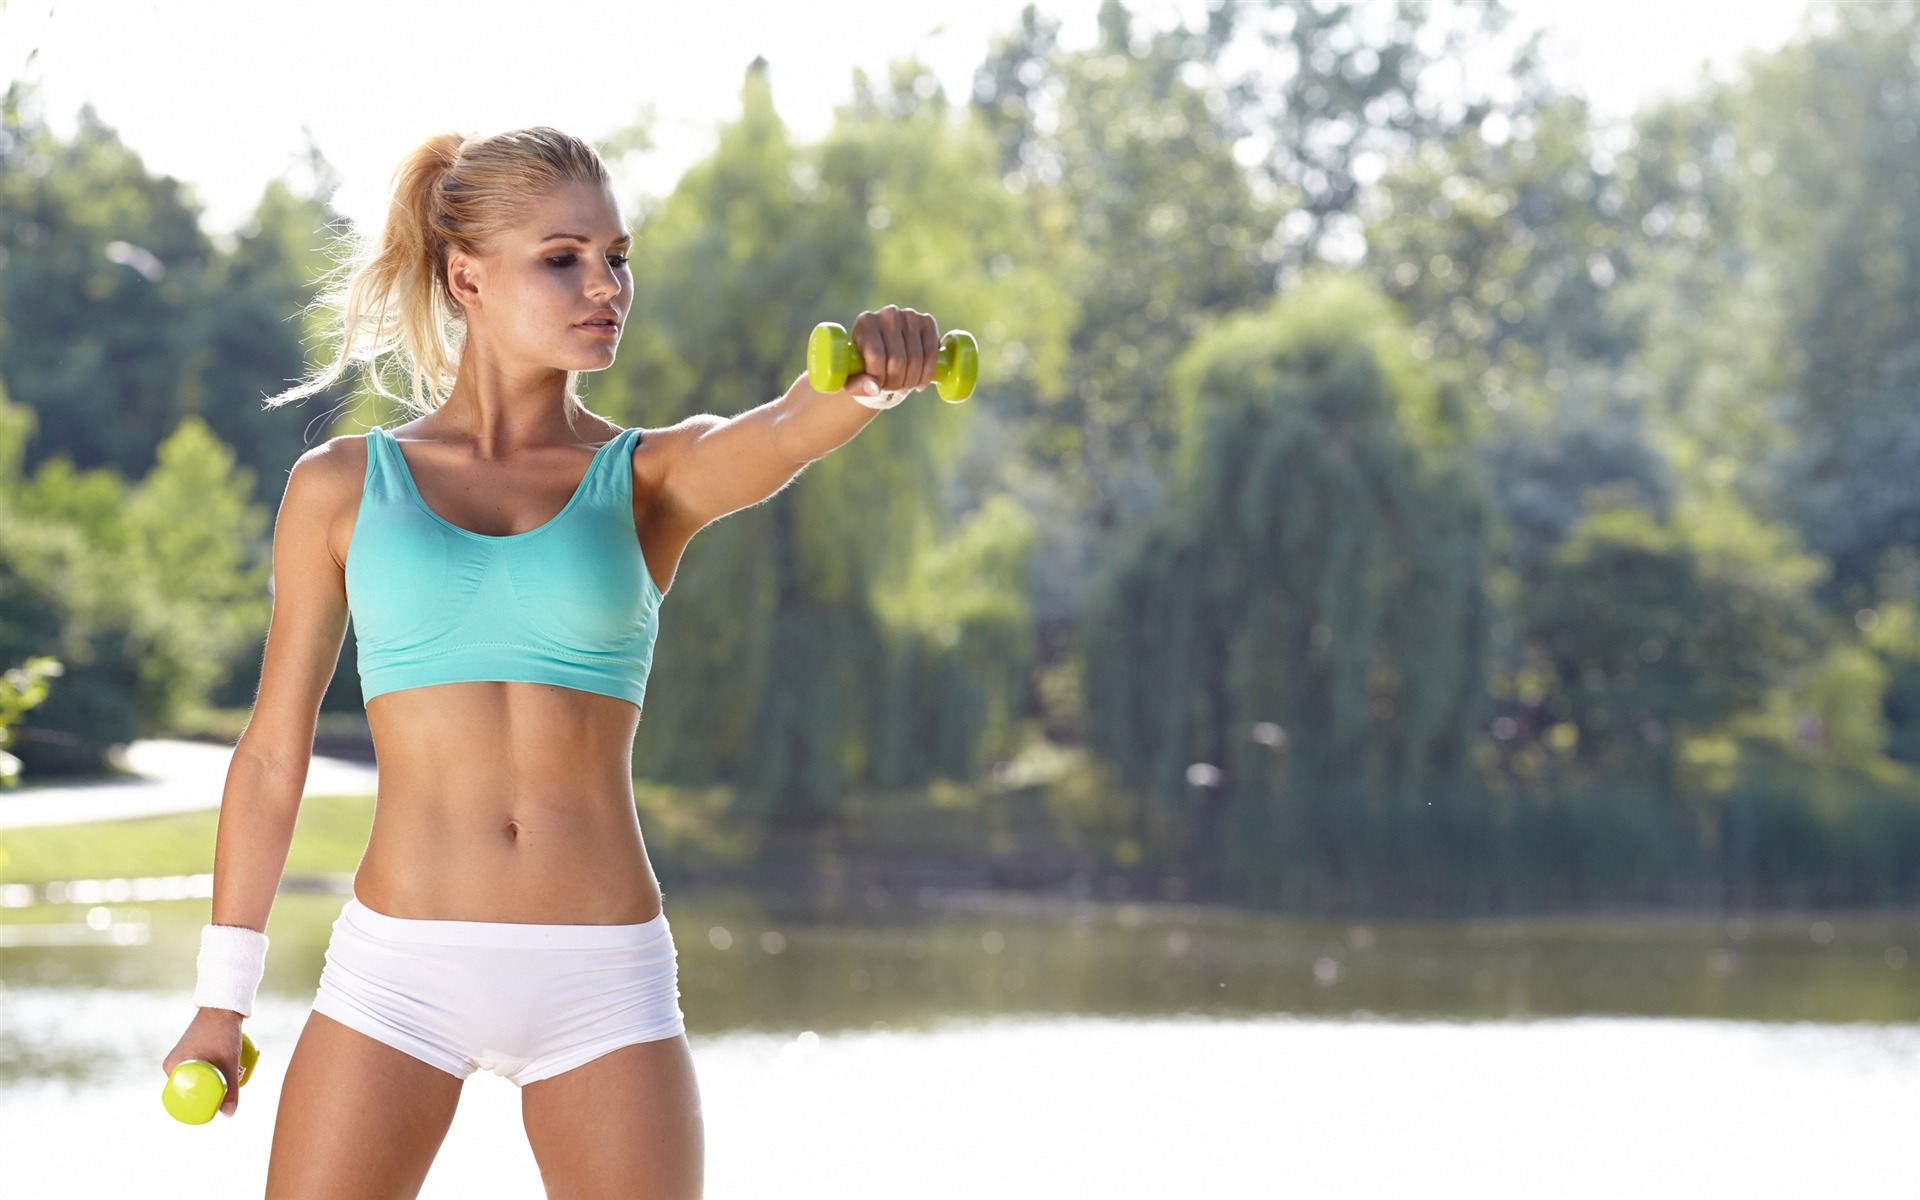 Blonde girl fitness workout at park photograph Wallpaper 1920x1200